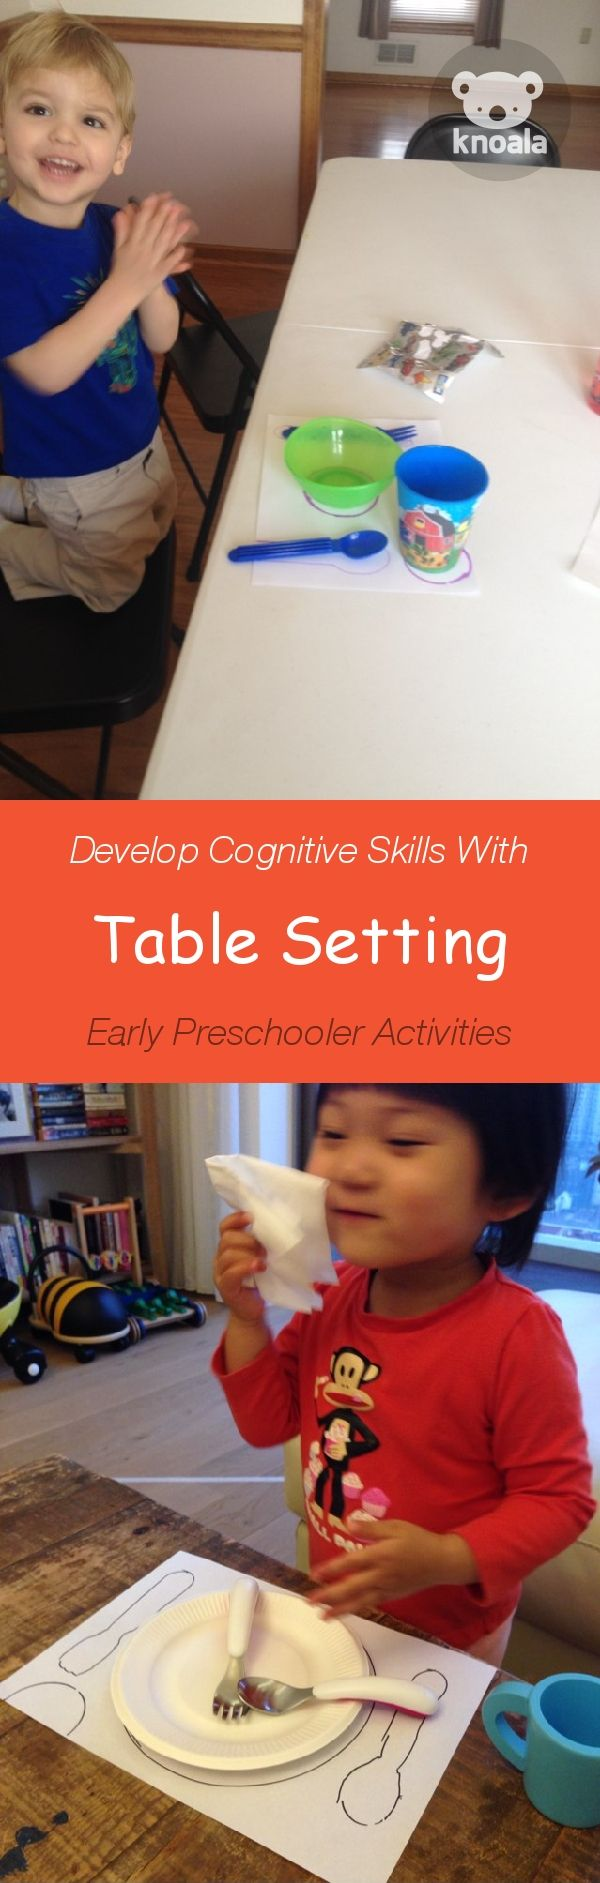 #Knoala Early Preschooler activity 'Table Setting' helps little ones develop Cognitive and Emotional skills. Click for simple instructions